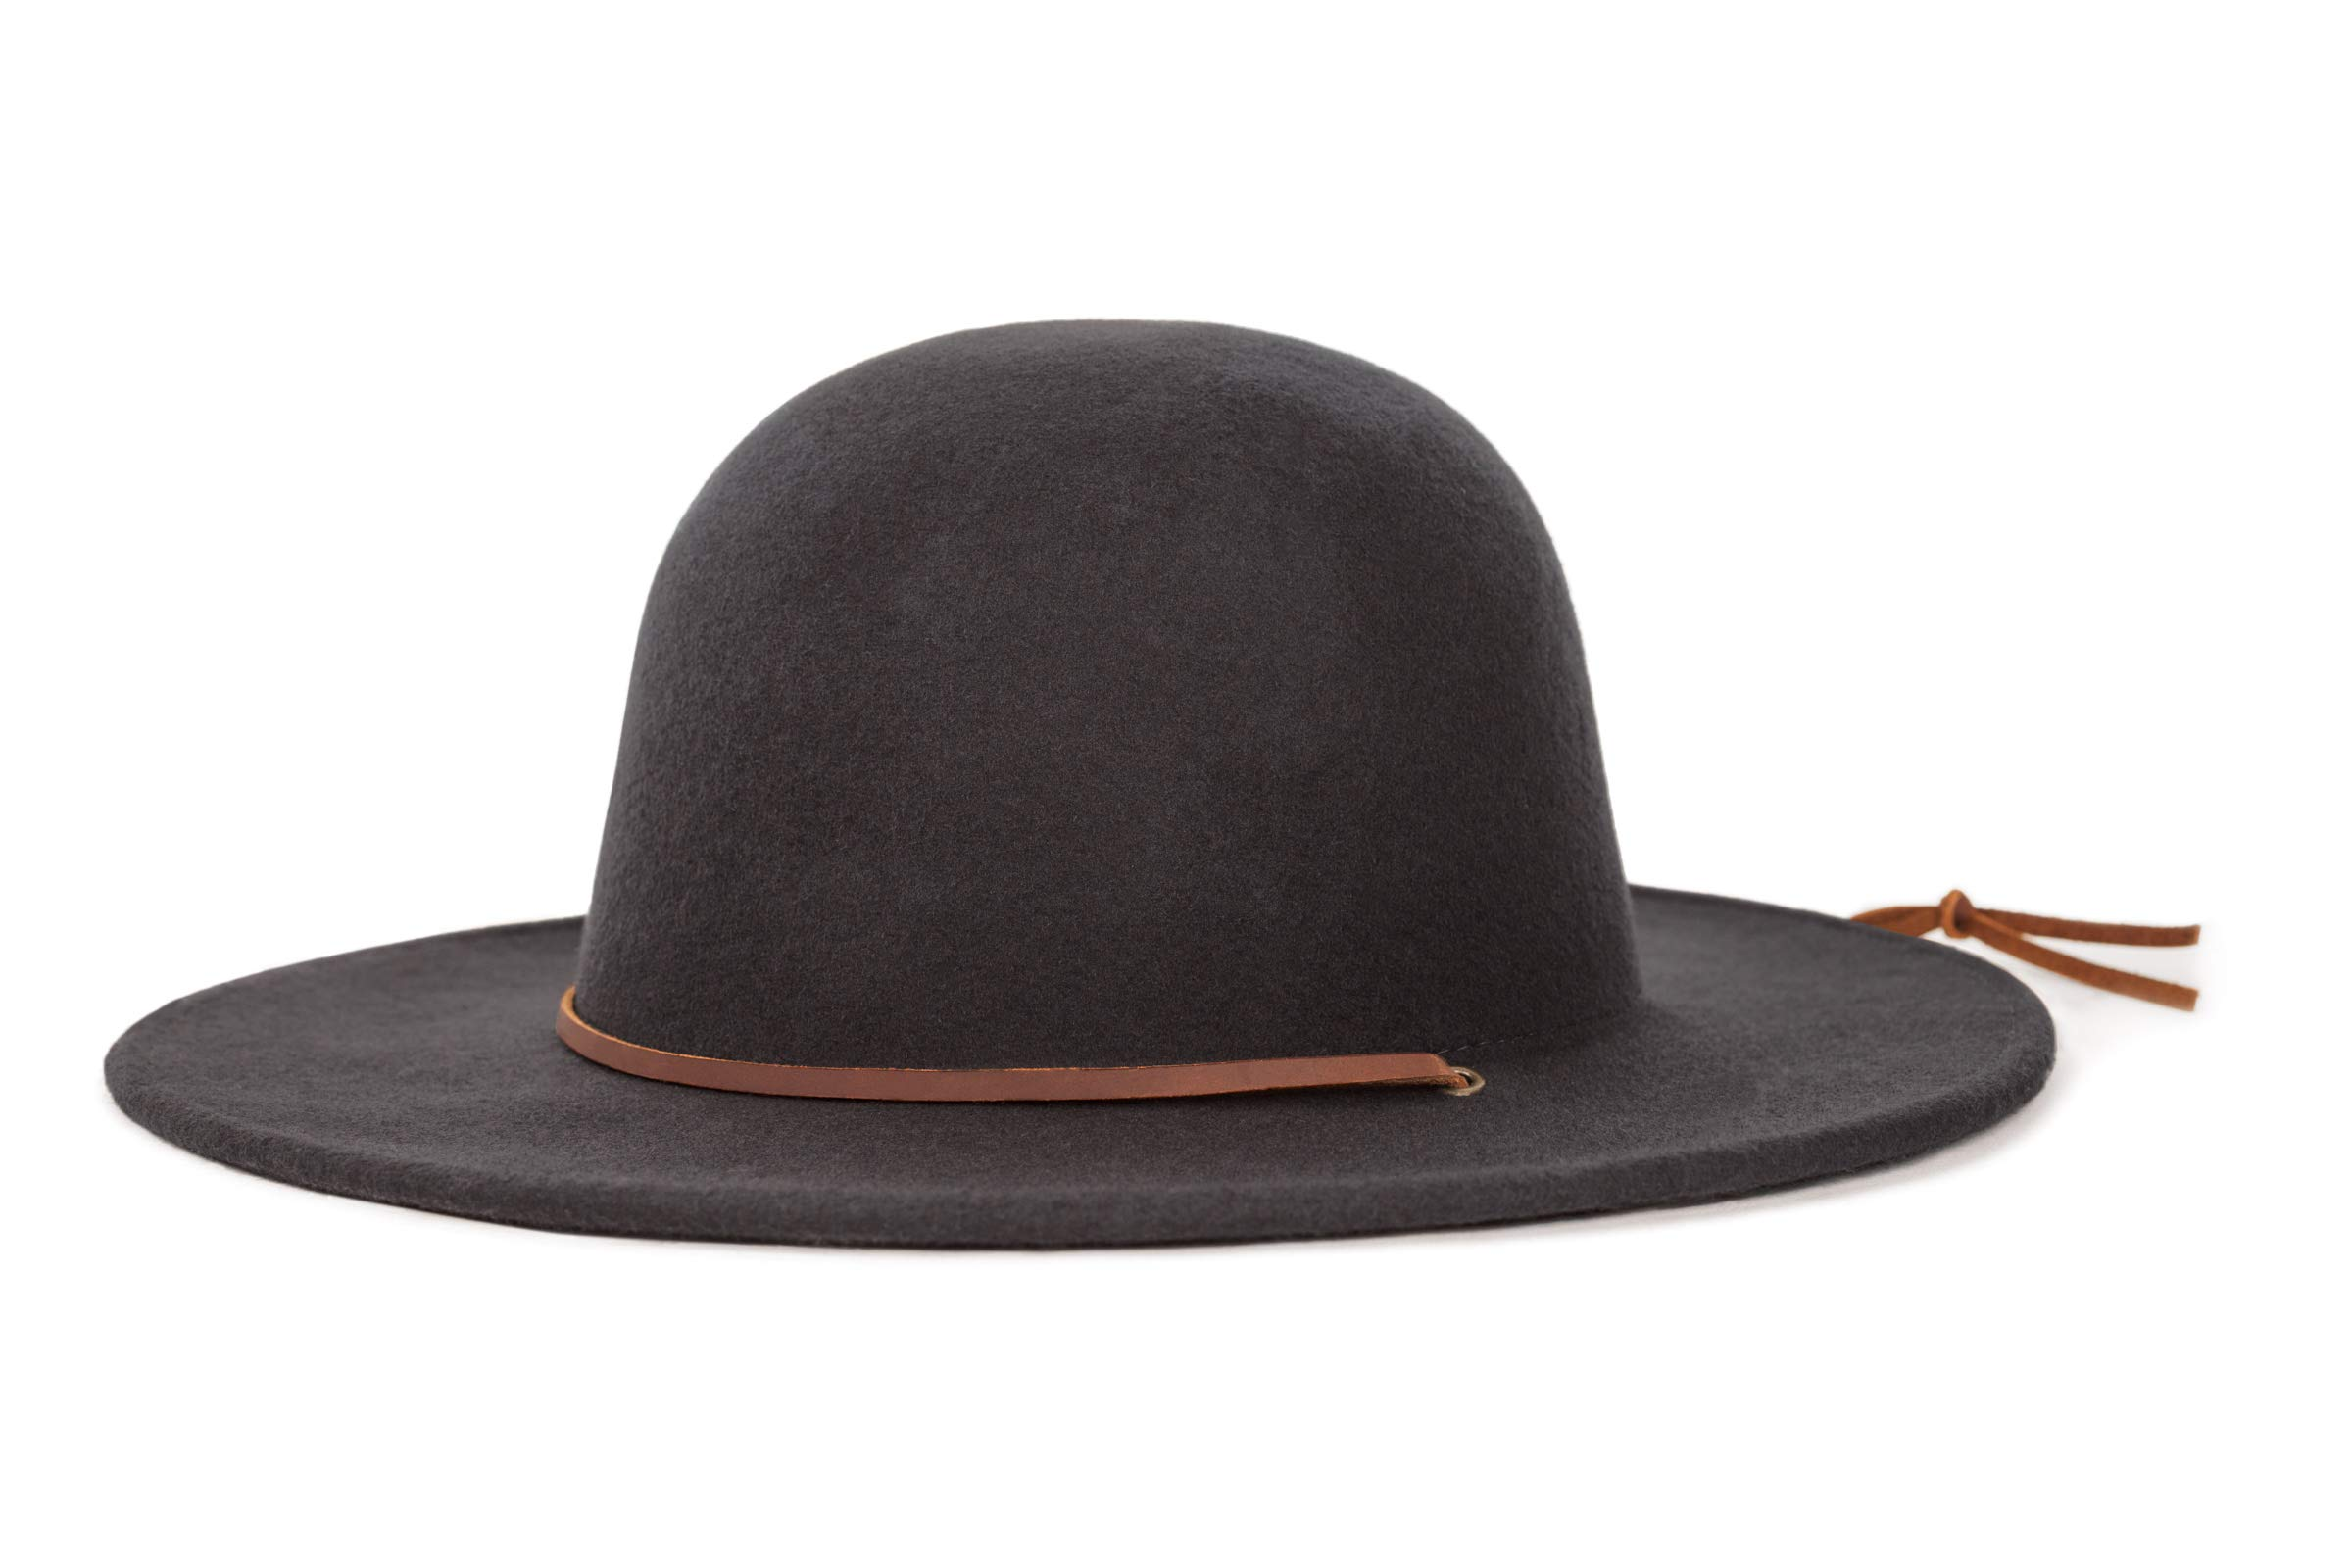 6e7977fbfe5f3 Best Rated in Men s Fedoras   Helpful Customer Reviews - Amazon.com